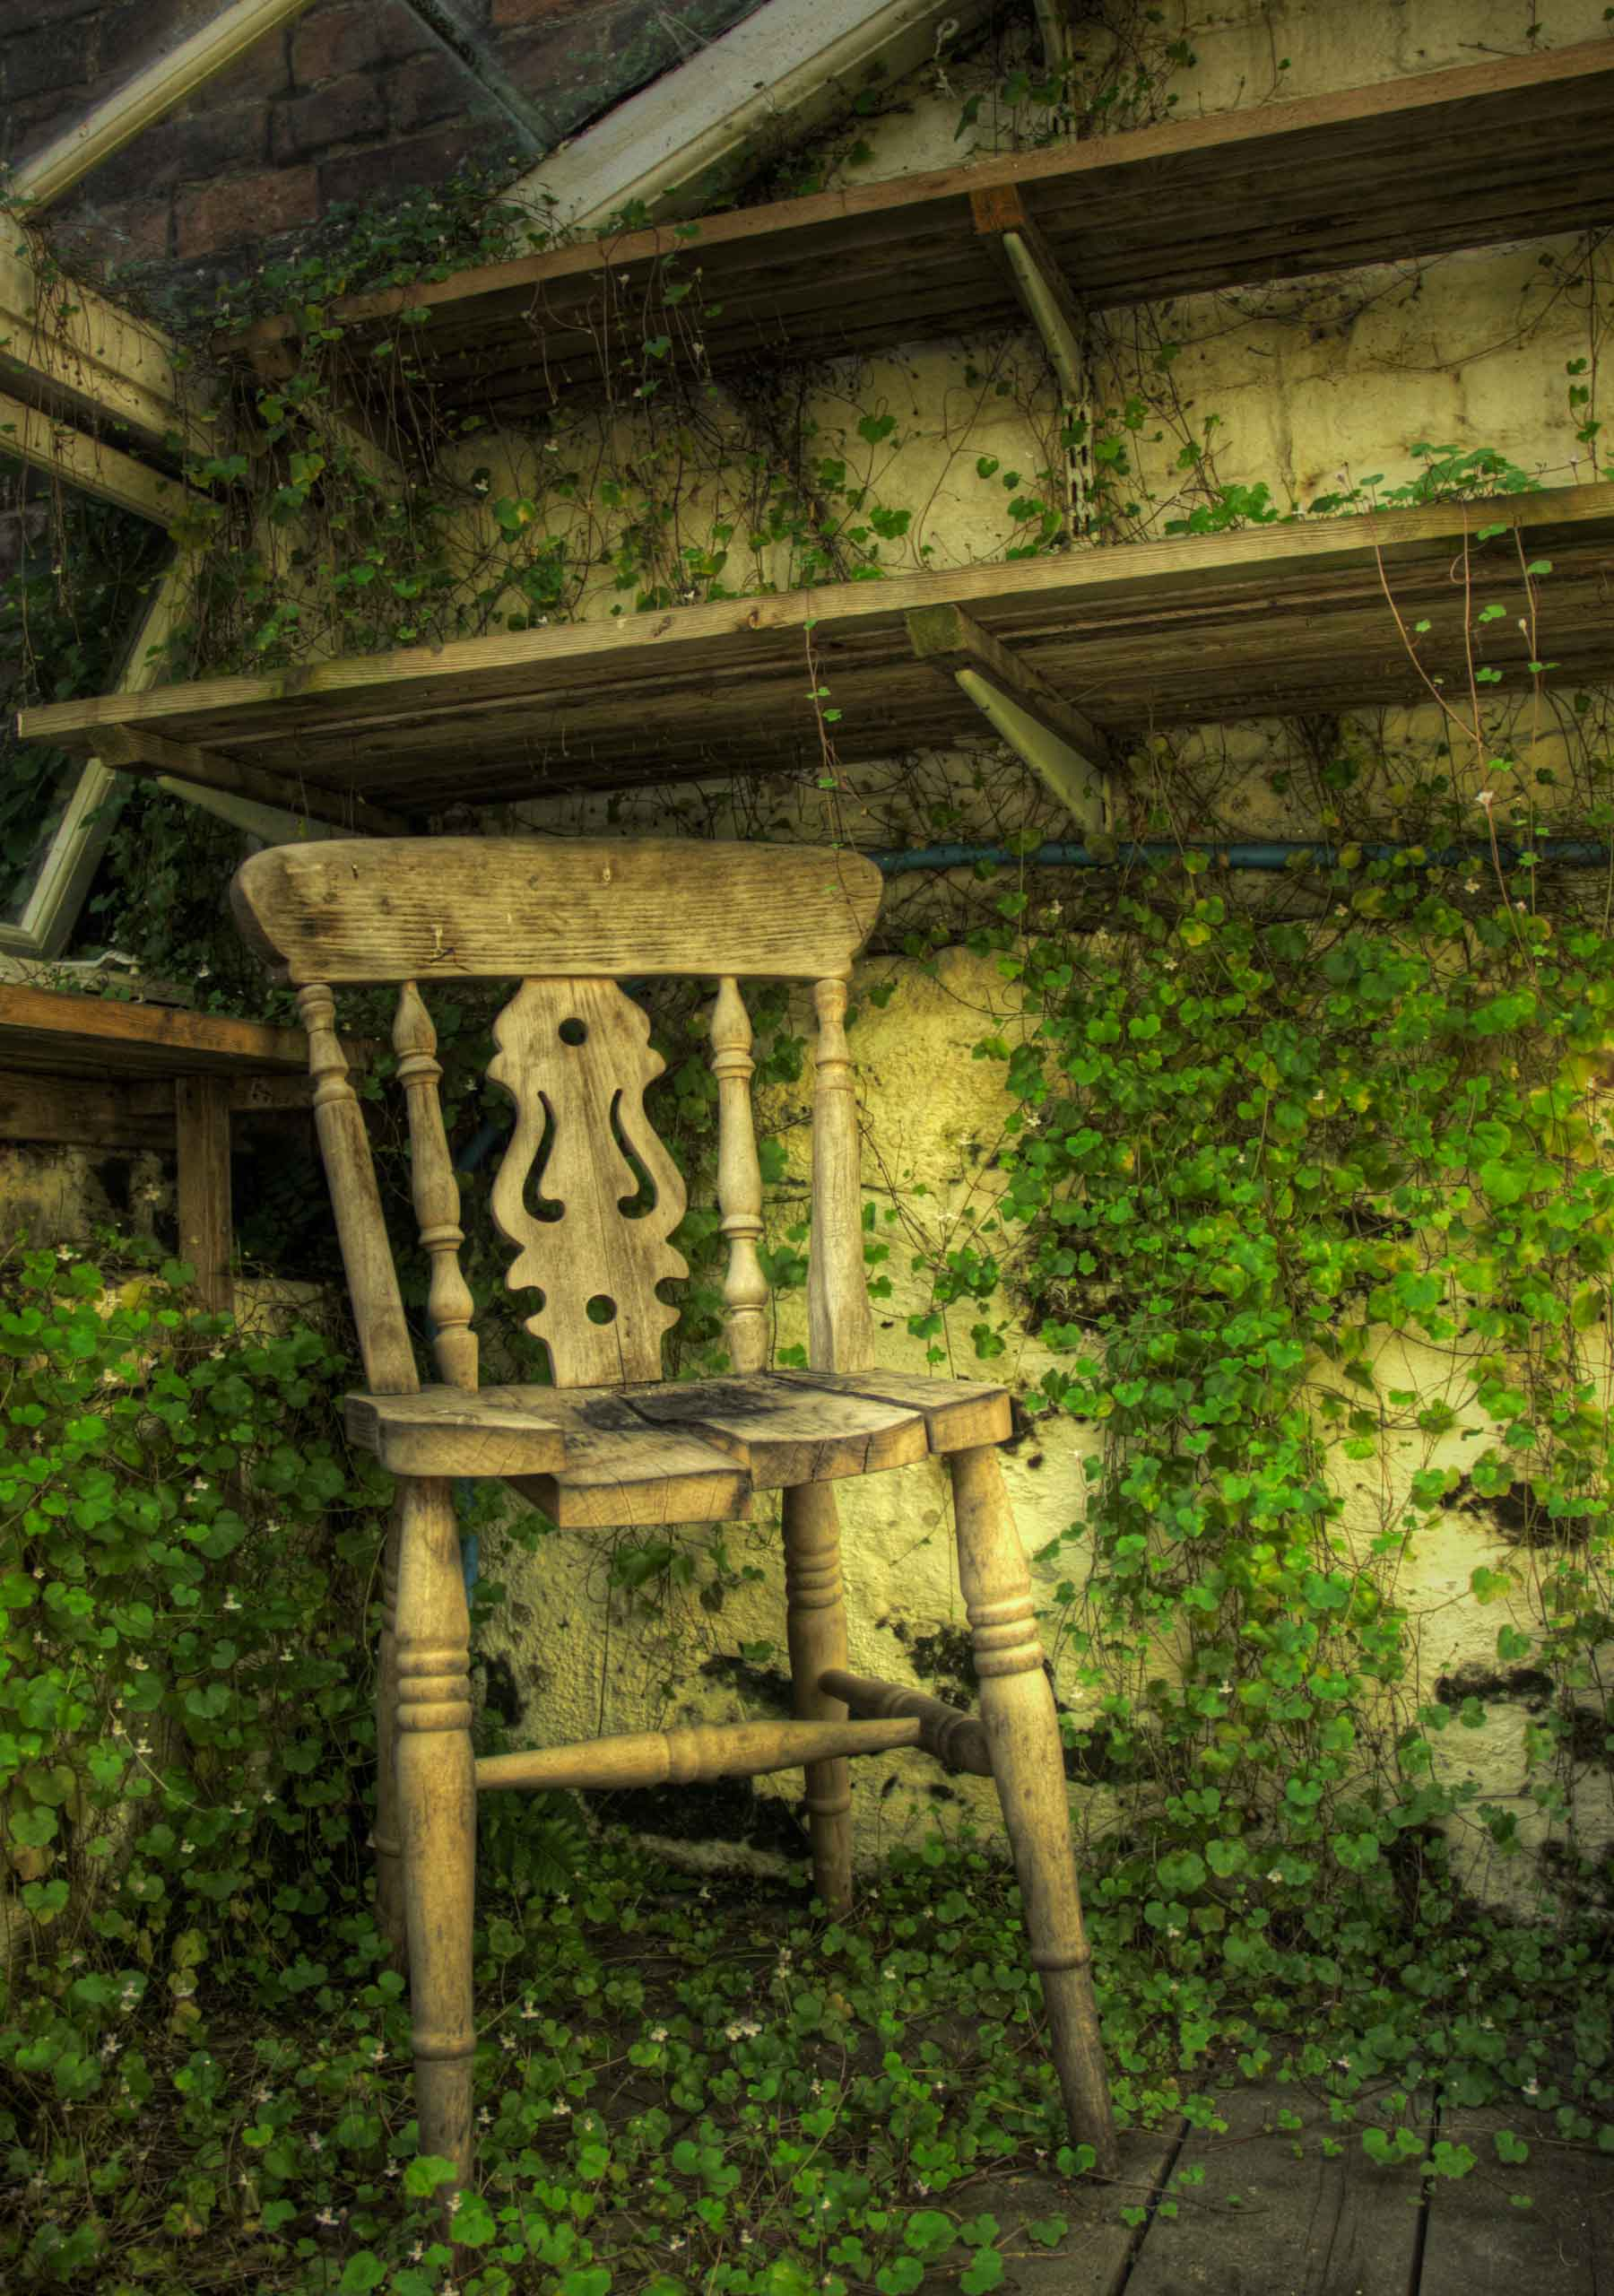 marks-garden-chair